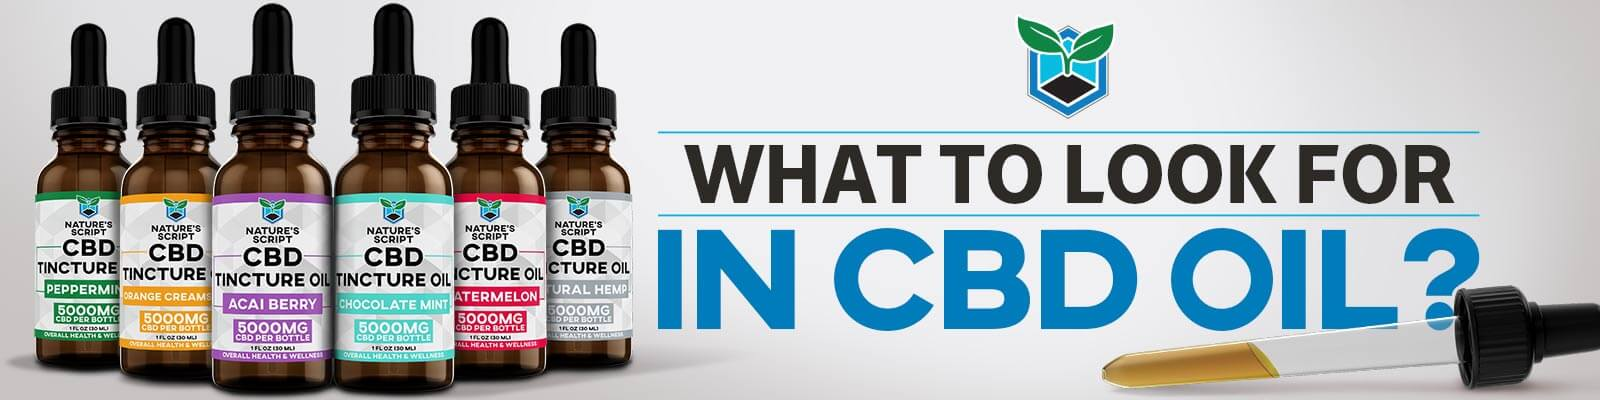 what to look for in cbd oil banner